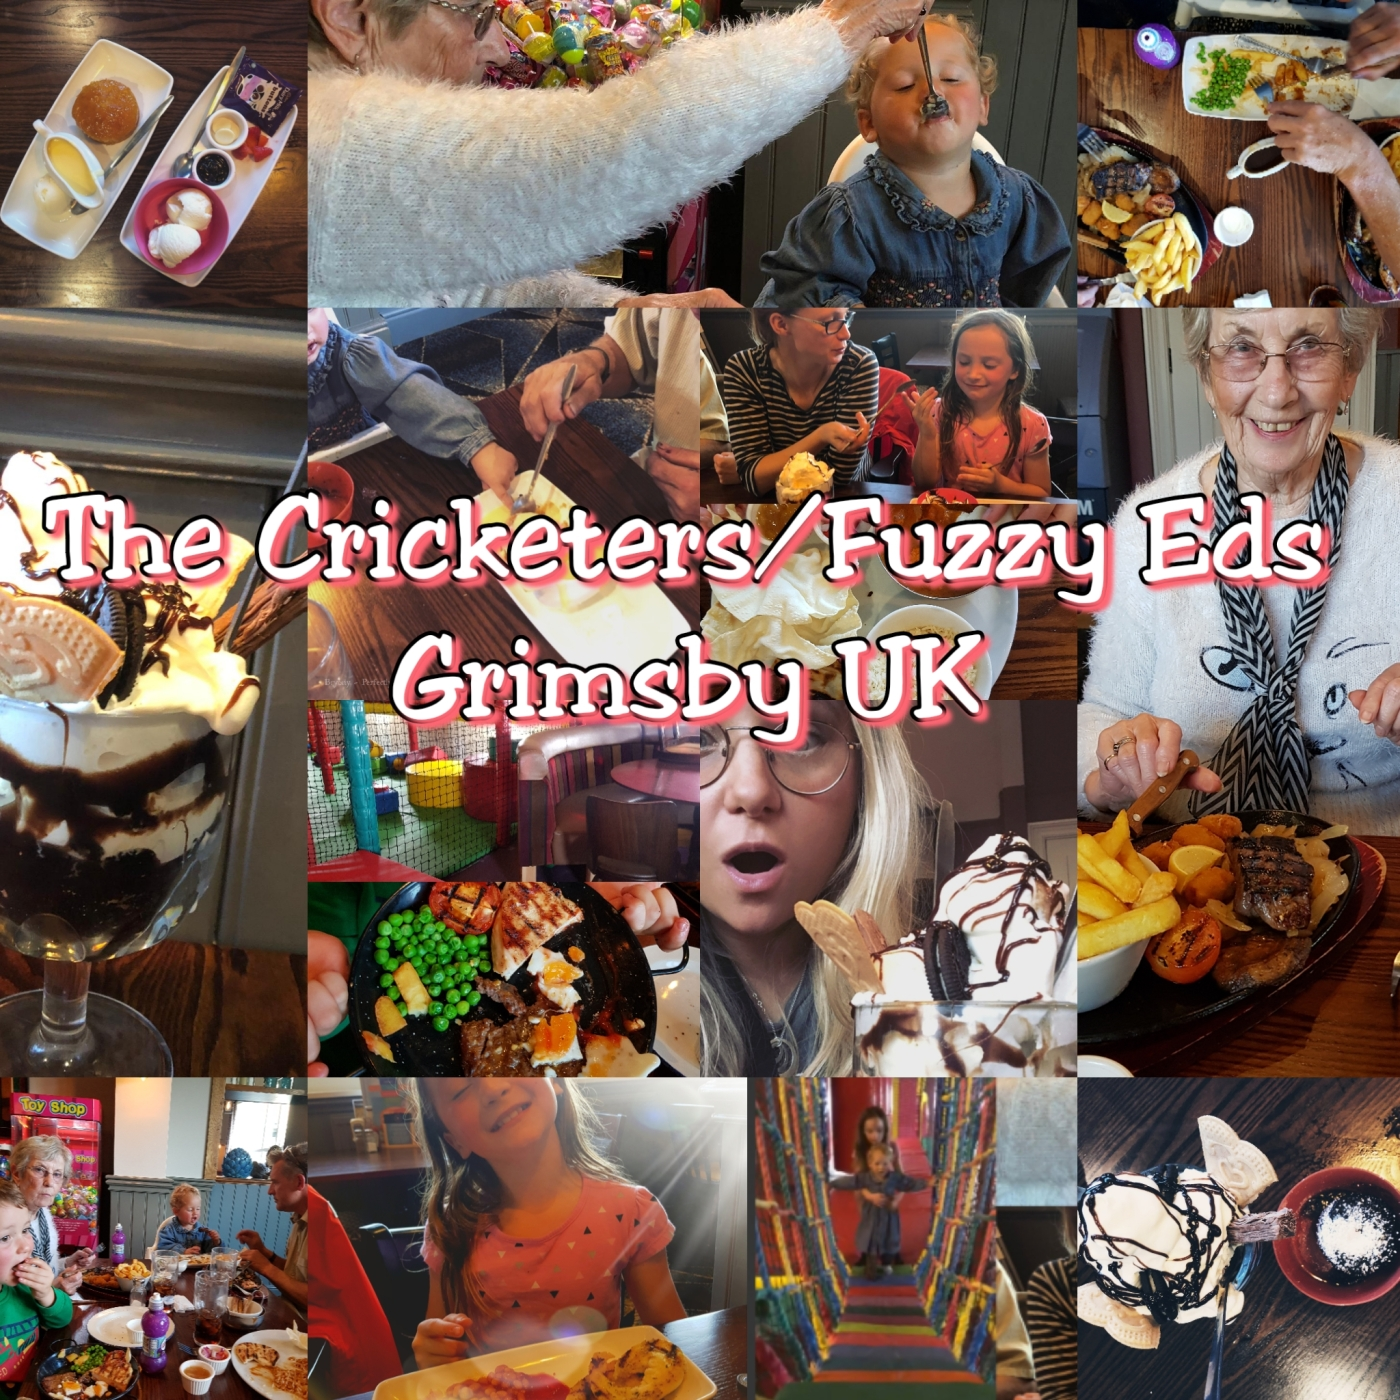 photos of family and food at the cricketers